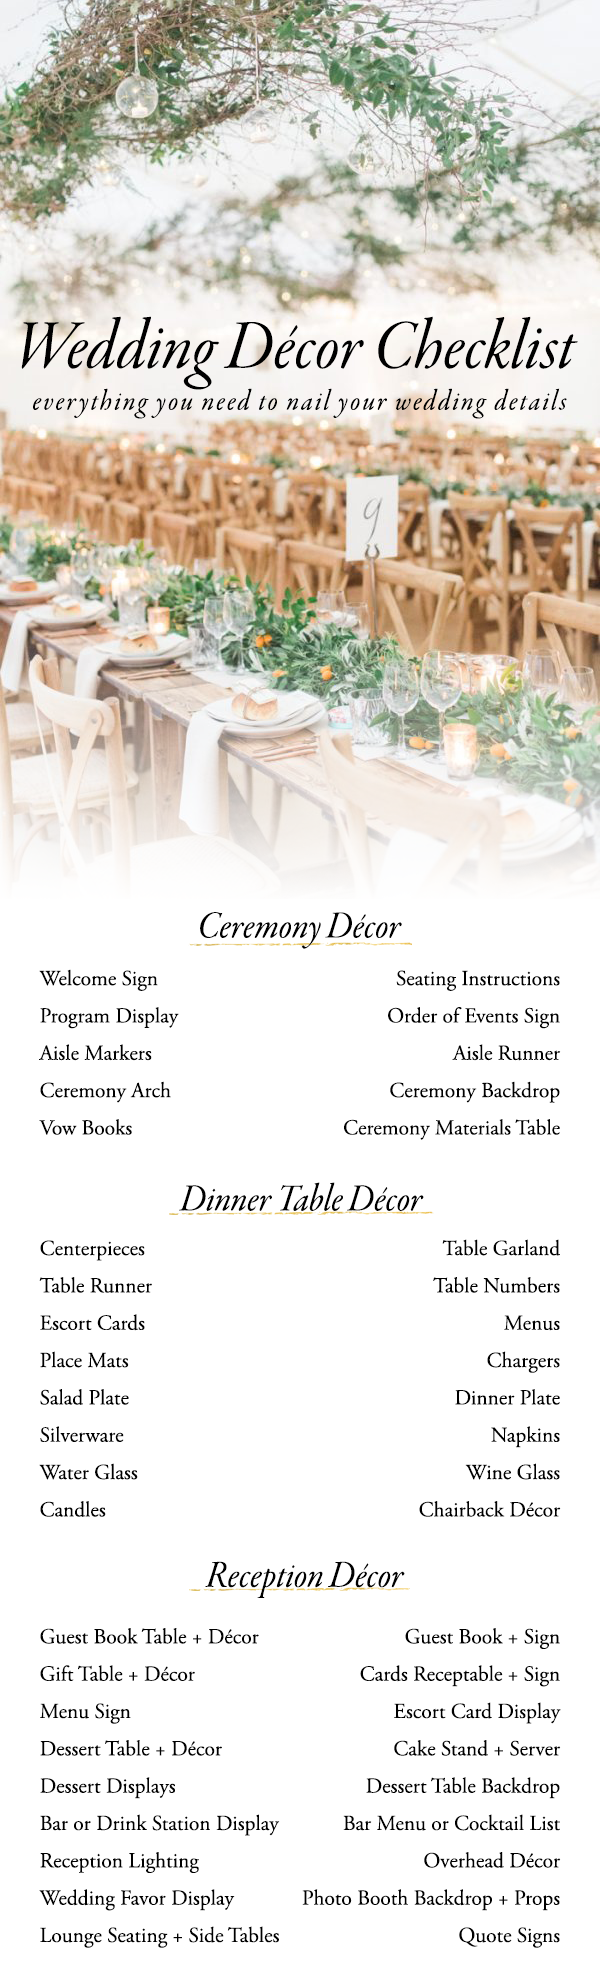 Use This Wedding Decor Checklist To Help You Nail Every